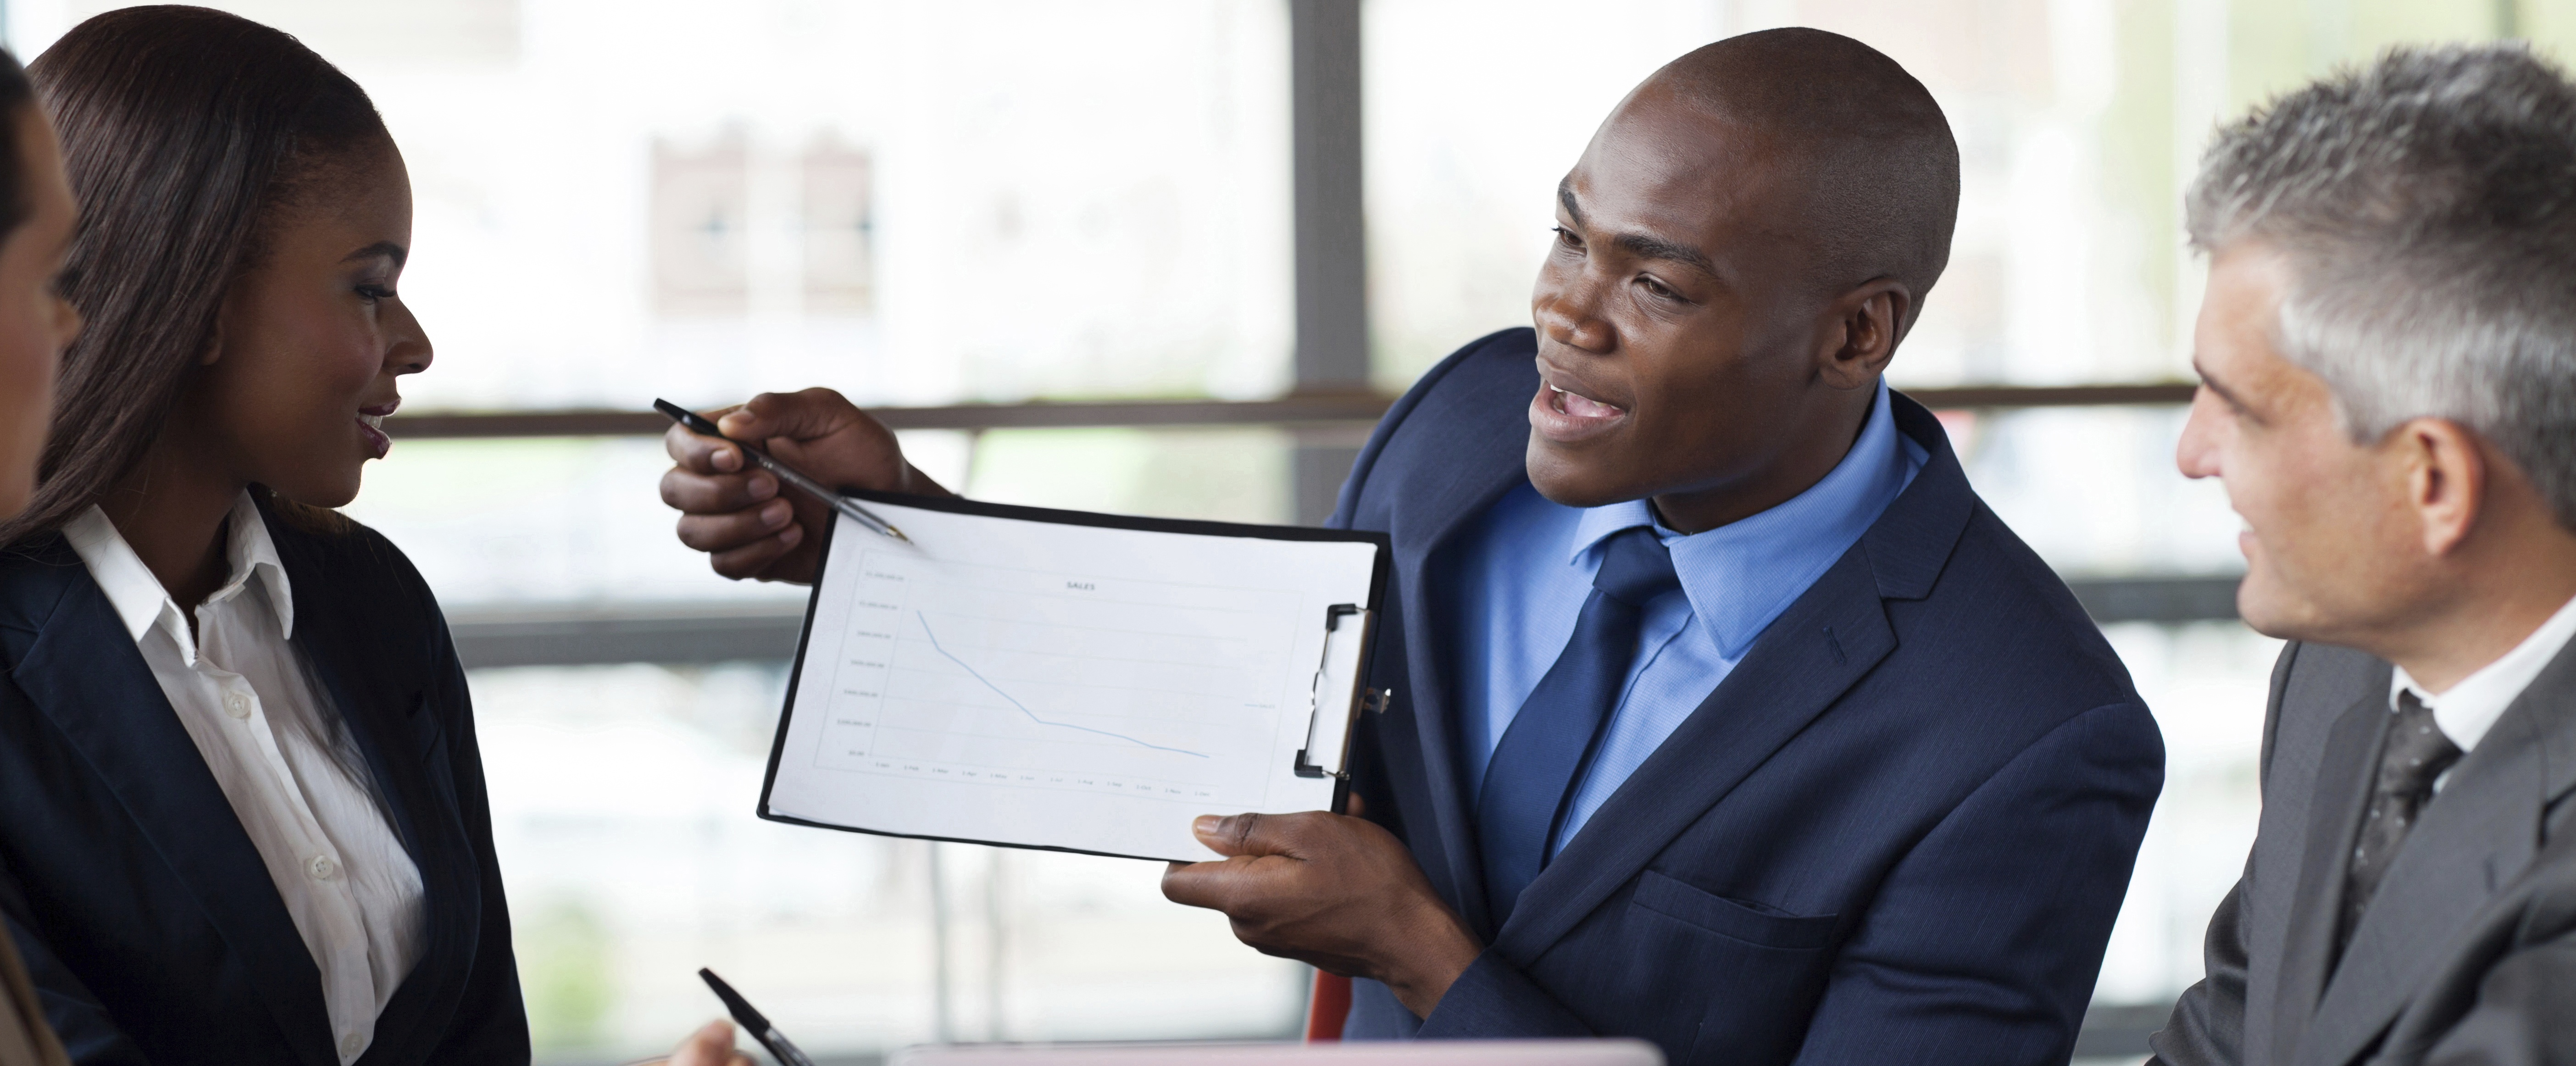 Photo of 10 Phrases Sales Persons Should Immediately Stop Using